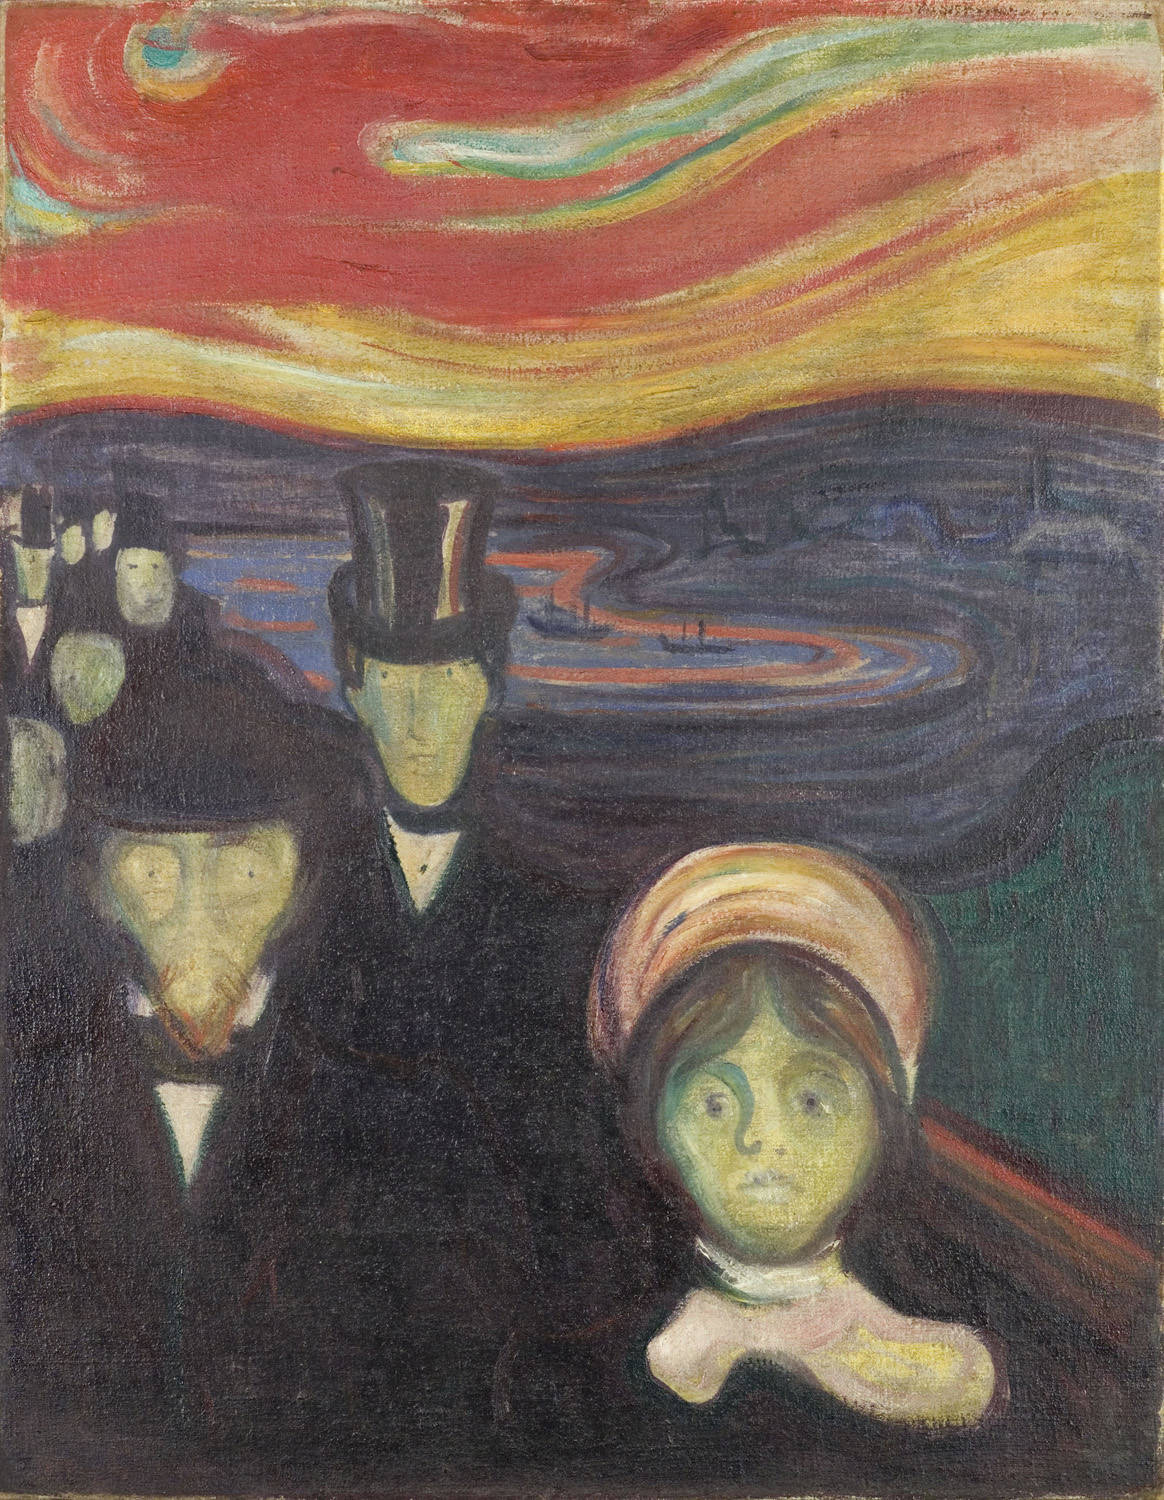 Photo:  Edvard Munch, Anxiety, 1894